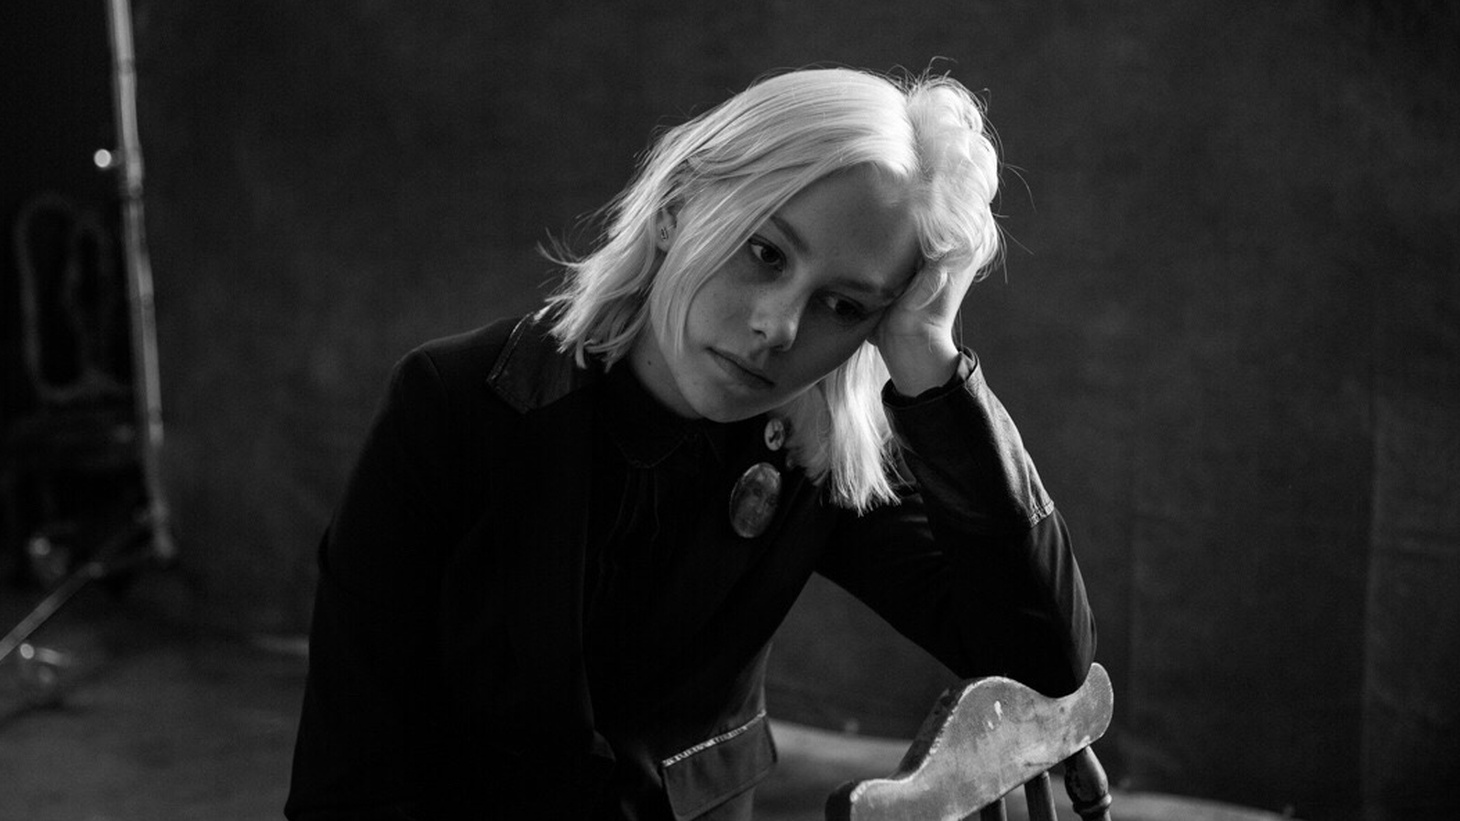 According to Ryan Adams, Phoebe Bridgers is a musical unicorn.